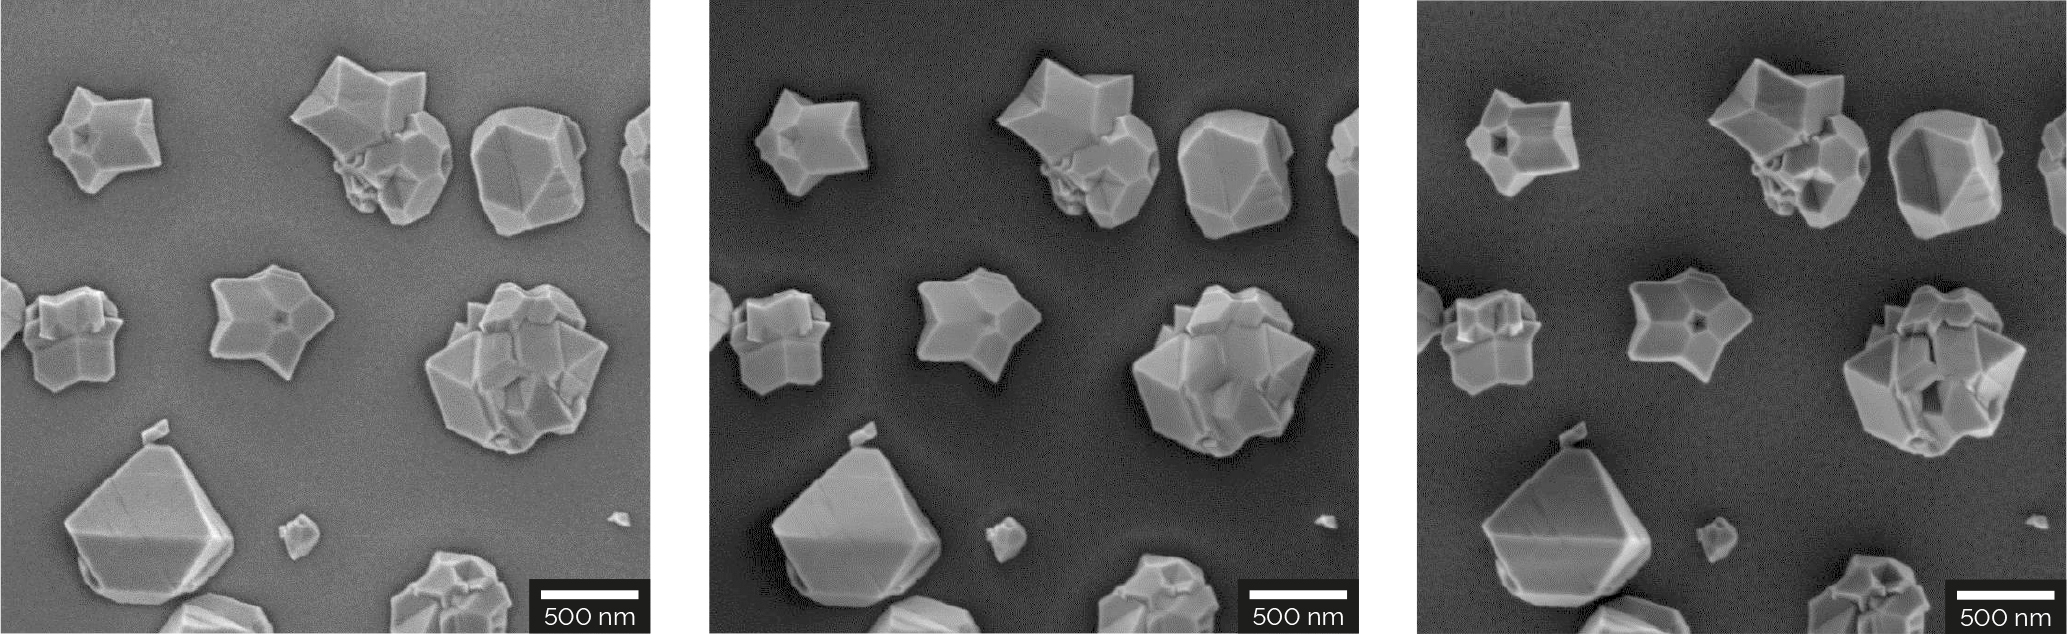 Fault planes and complex geometries of individual particles in nanocrystalline diamonds on Si substrate acquired at 2 keV with the four detectors Multidetector (left), Axial detector (center), E-T detector (right).